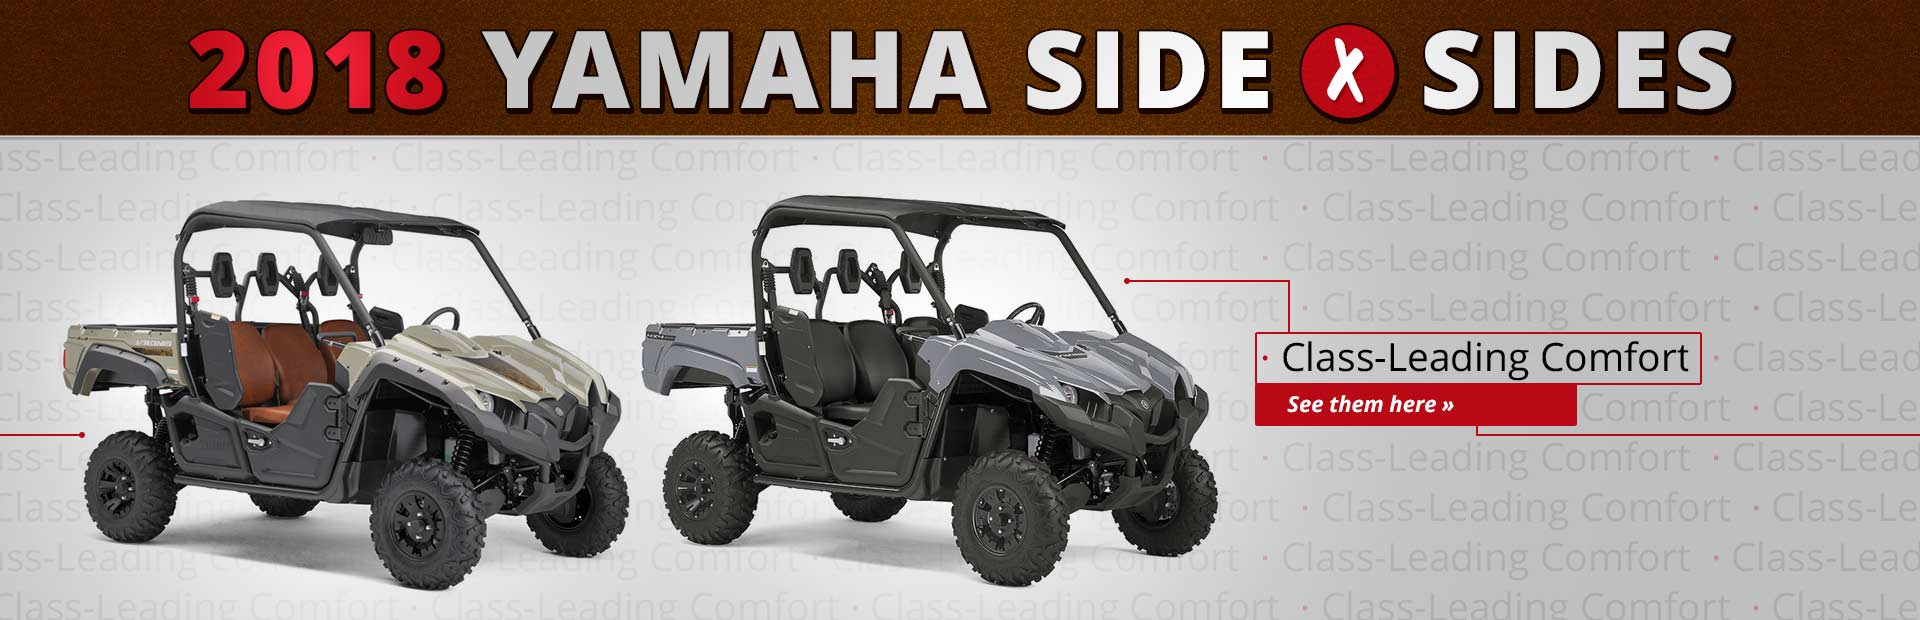 2018 Yamaha Side x Sides: Click here to view the models.